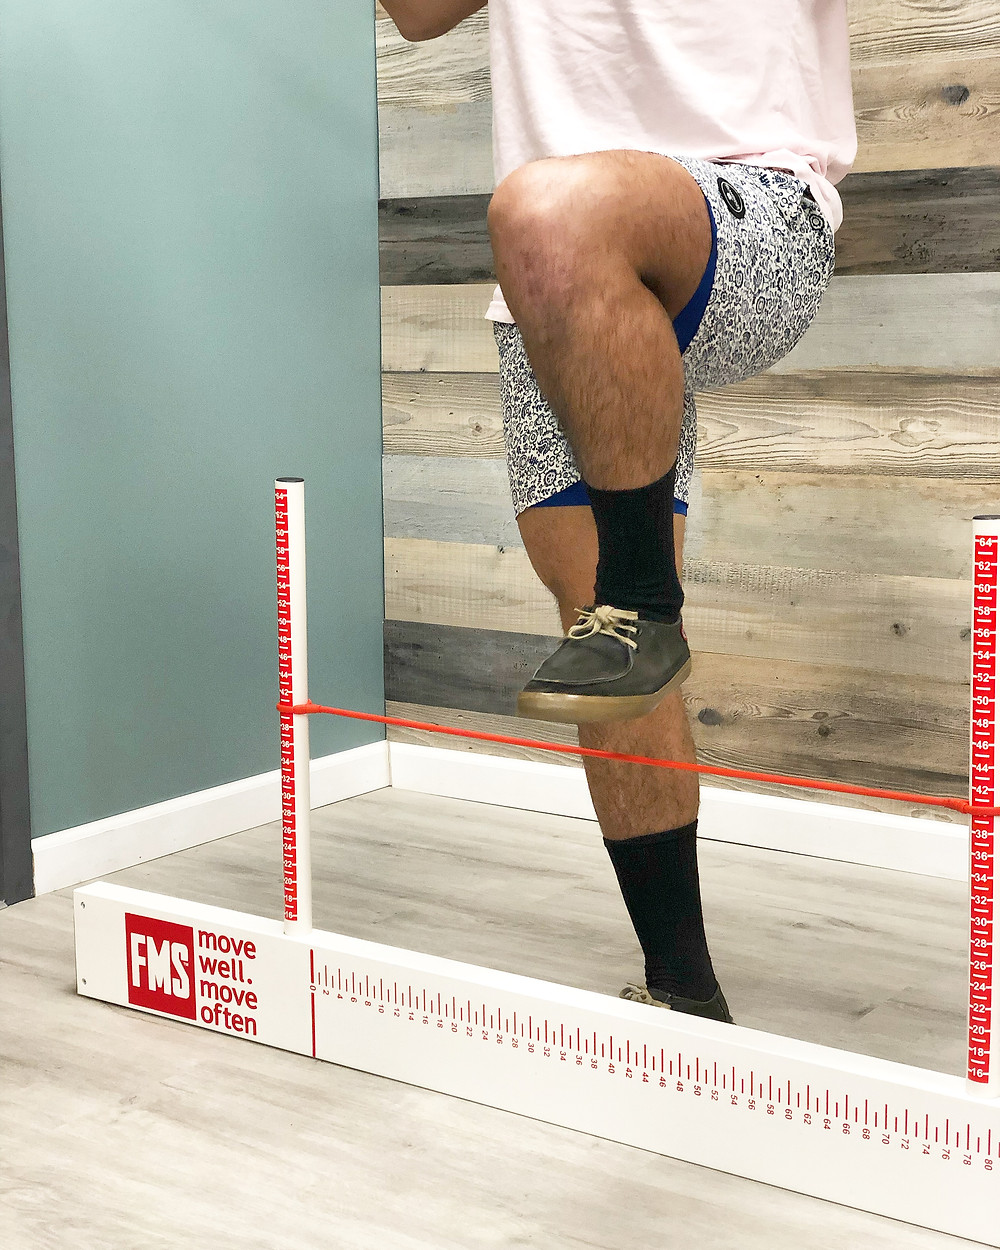 This athlete is performing the Hurdle Step movement of the FMS